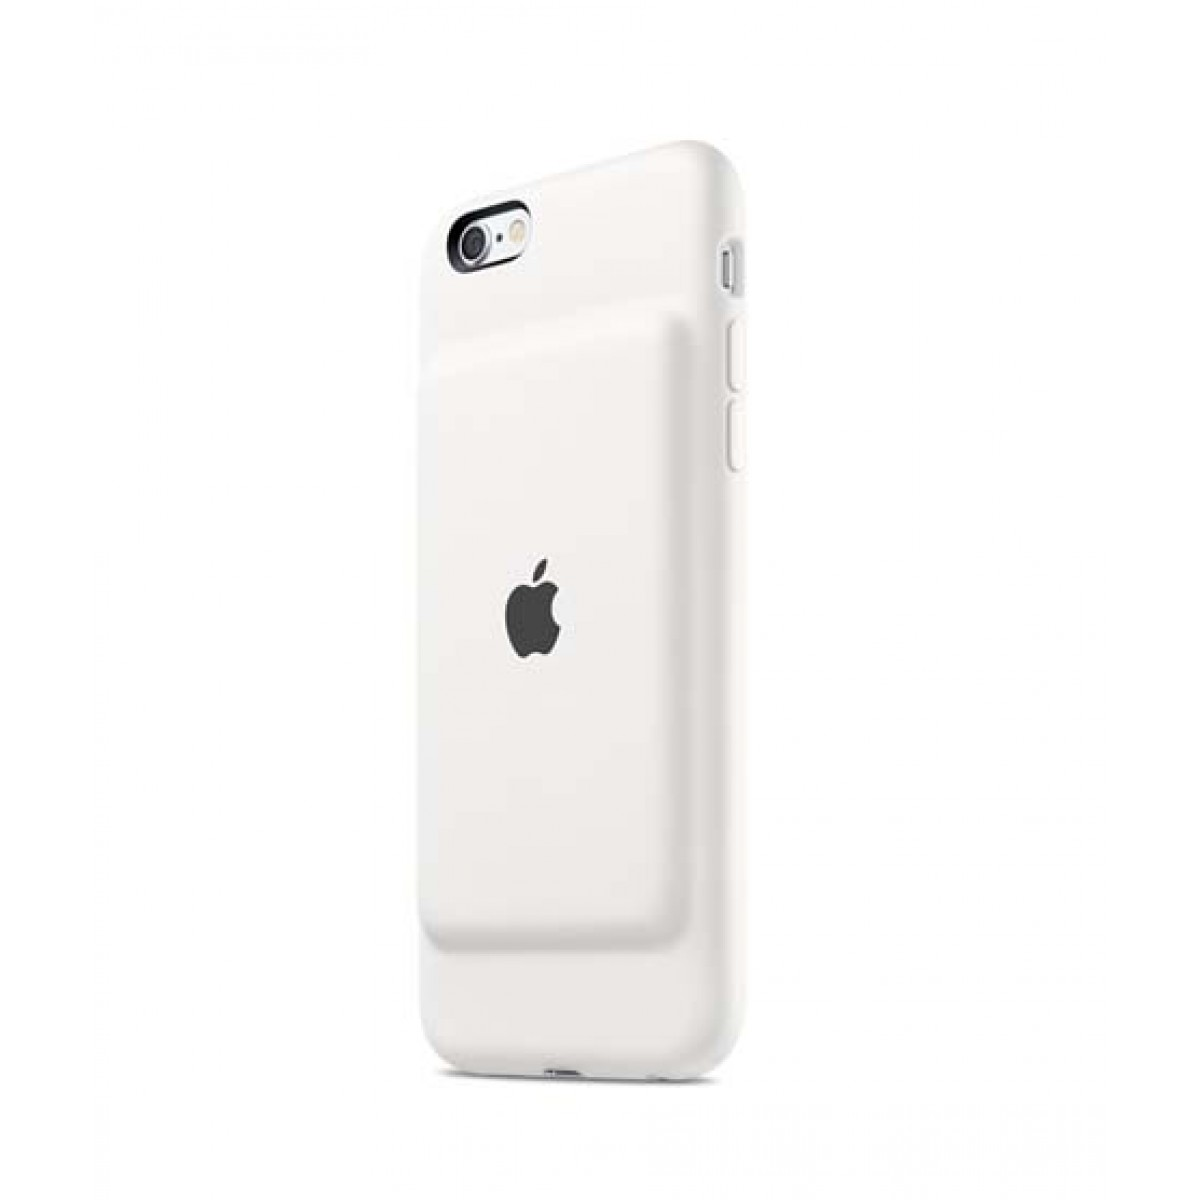 new arrival 2bce2 79990 Apple iPhone 6s Smart Battery Case White (MGQM2)